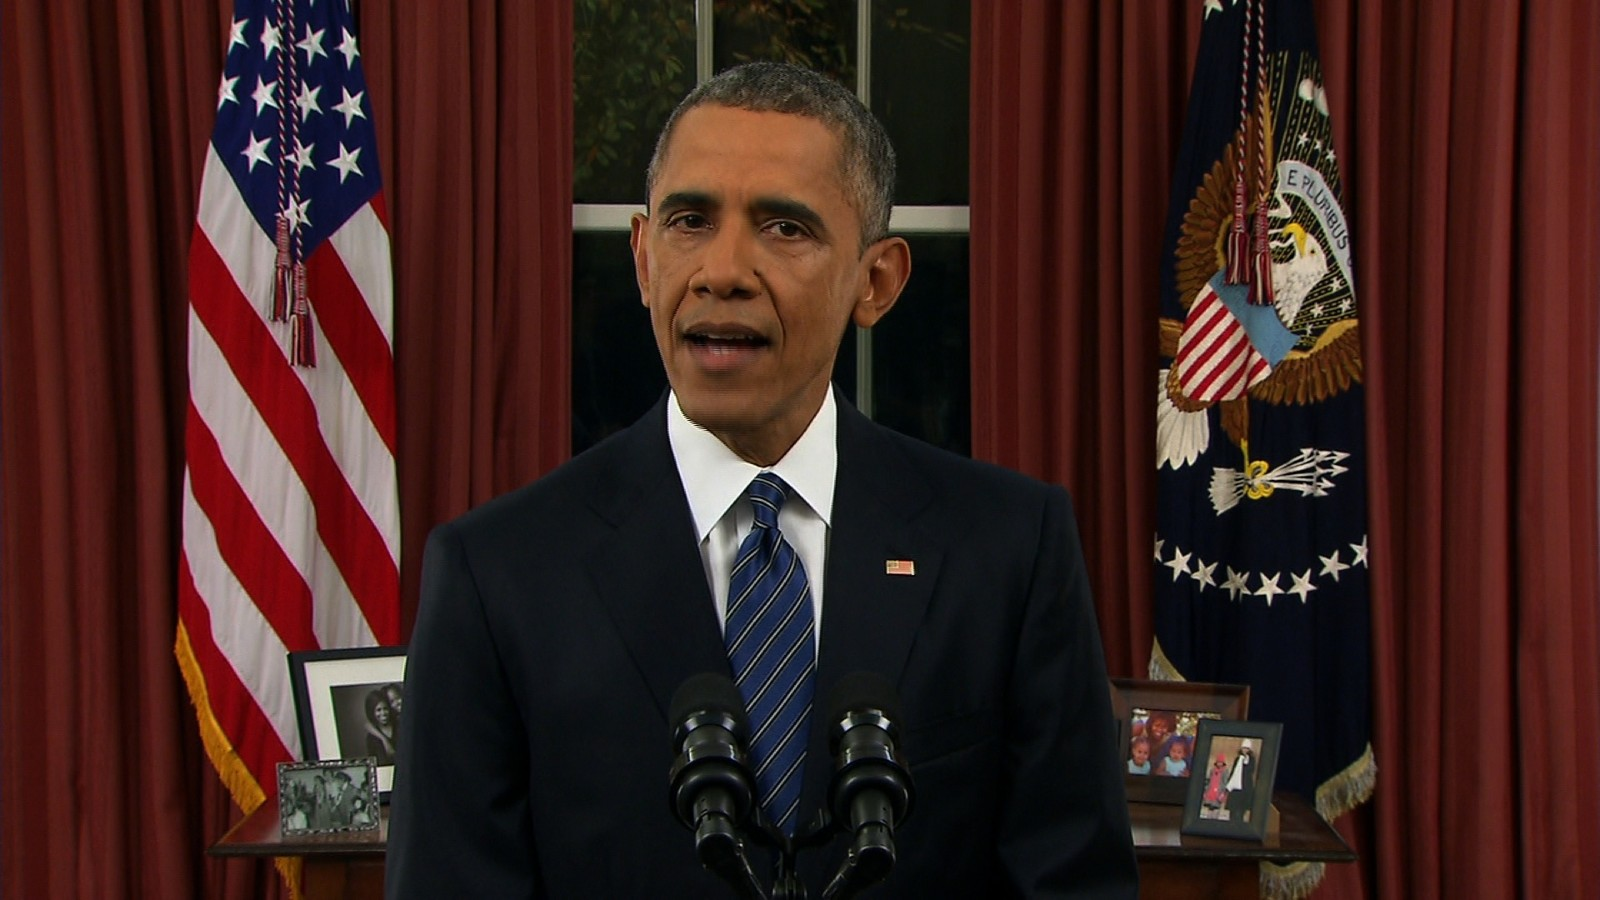 isis main office. transcript president obamau0027s address to the nation on san bernardino terror attack and war isis cnnpolitics isis main office n